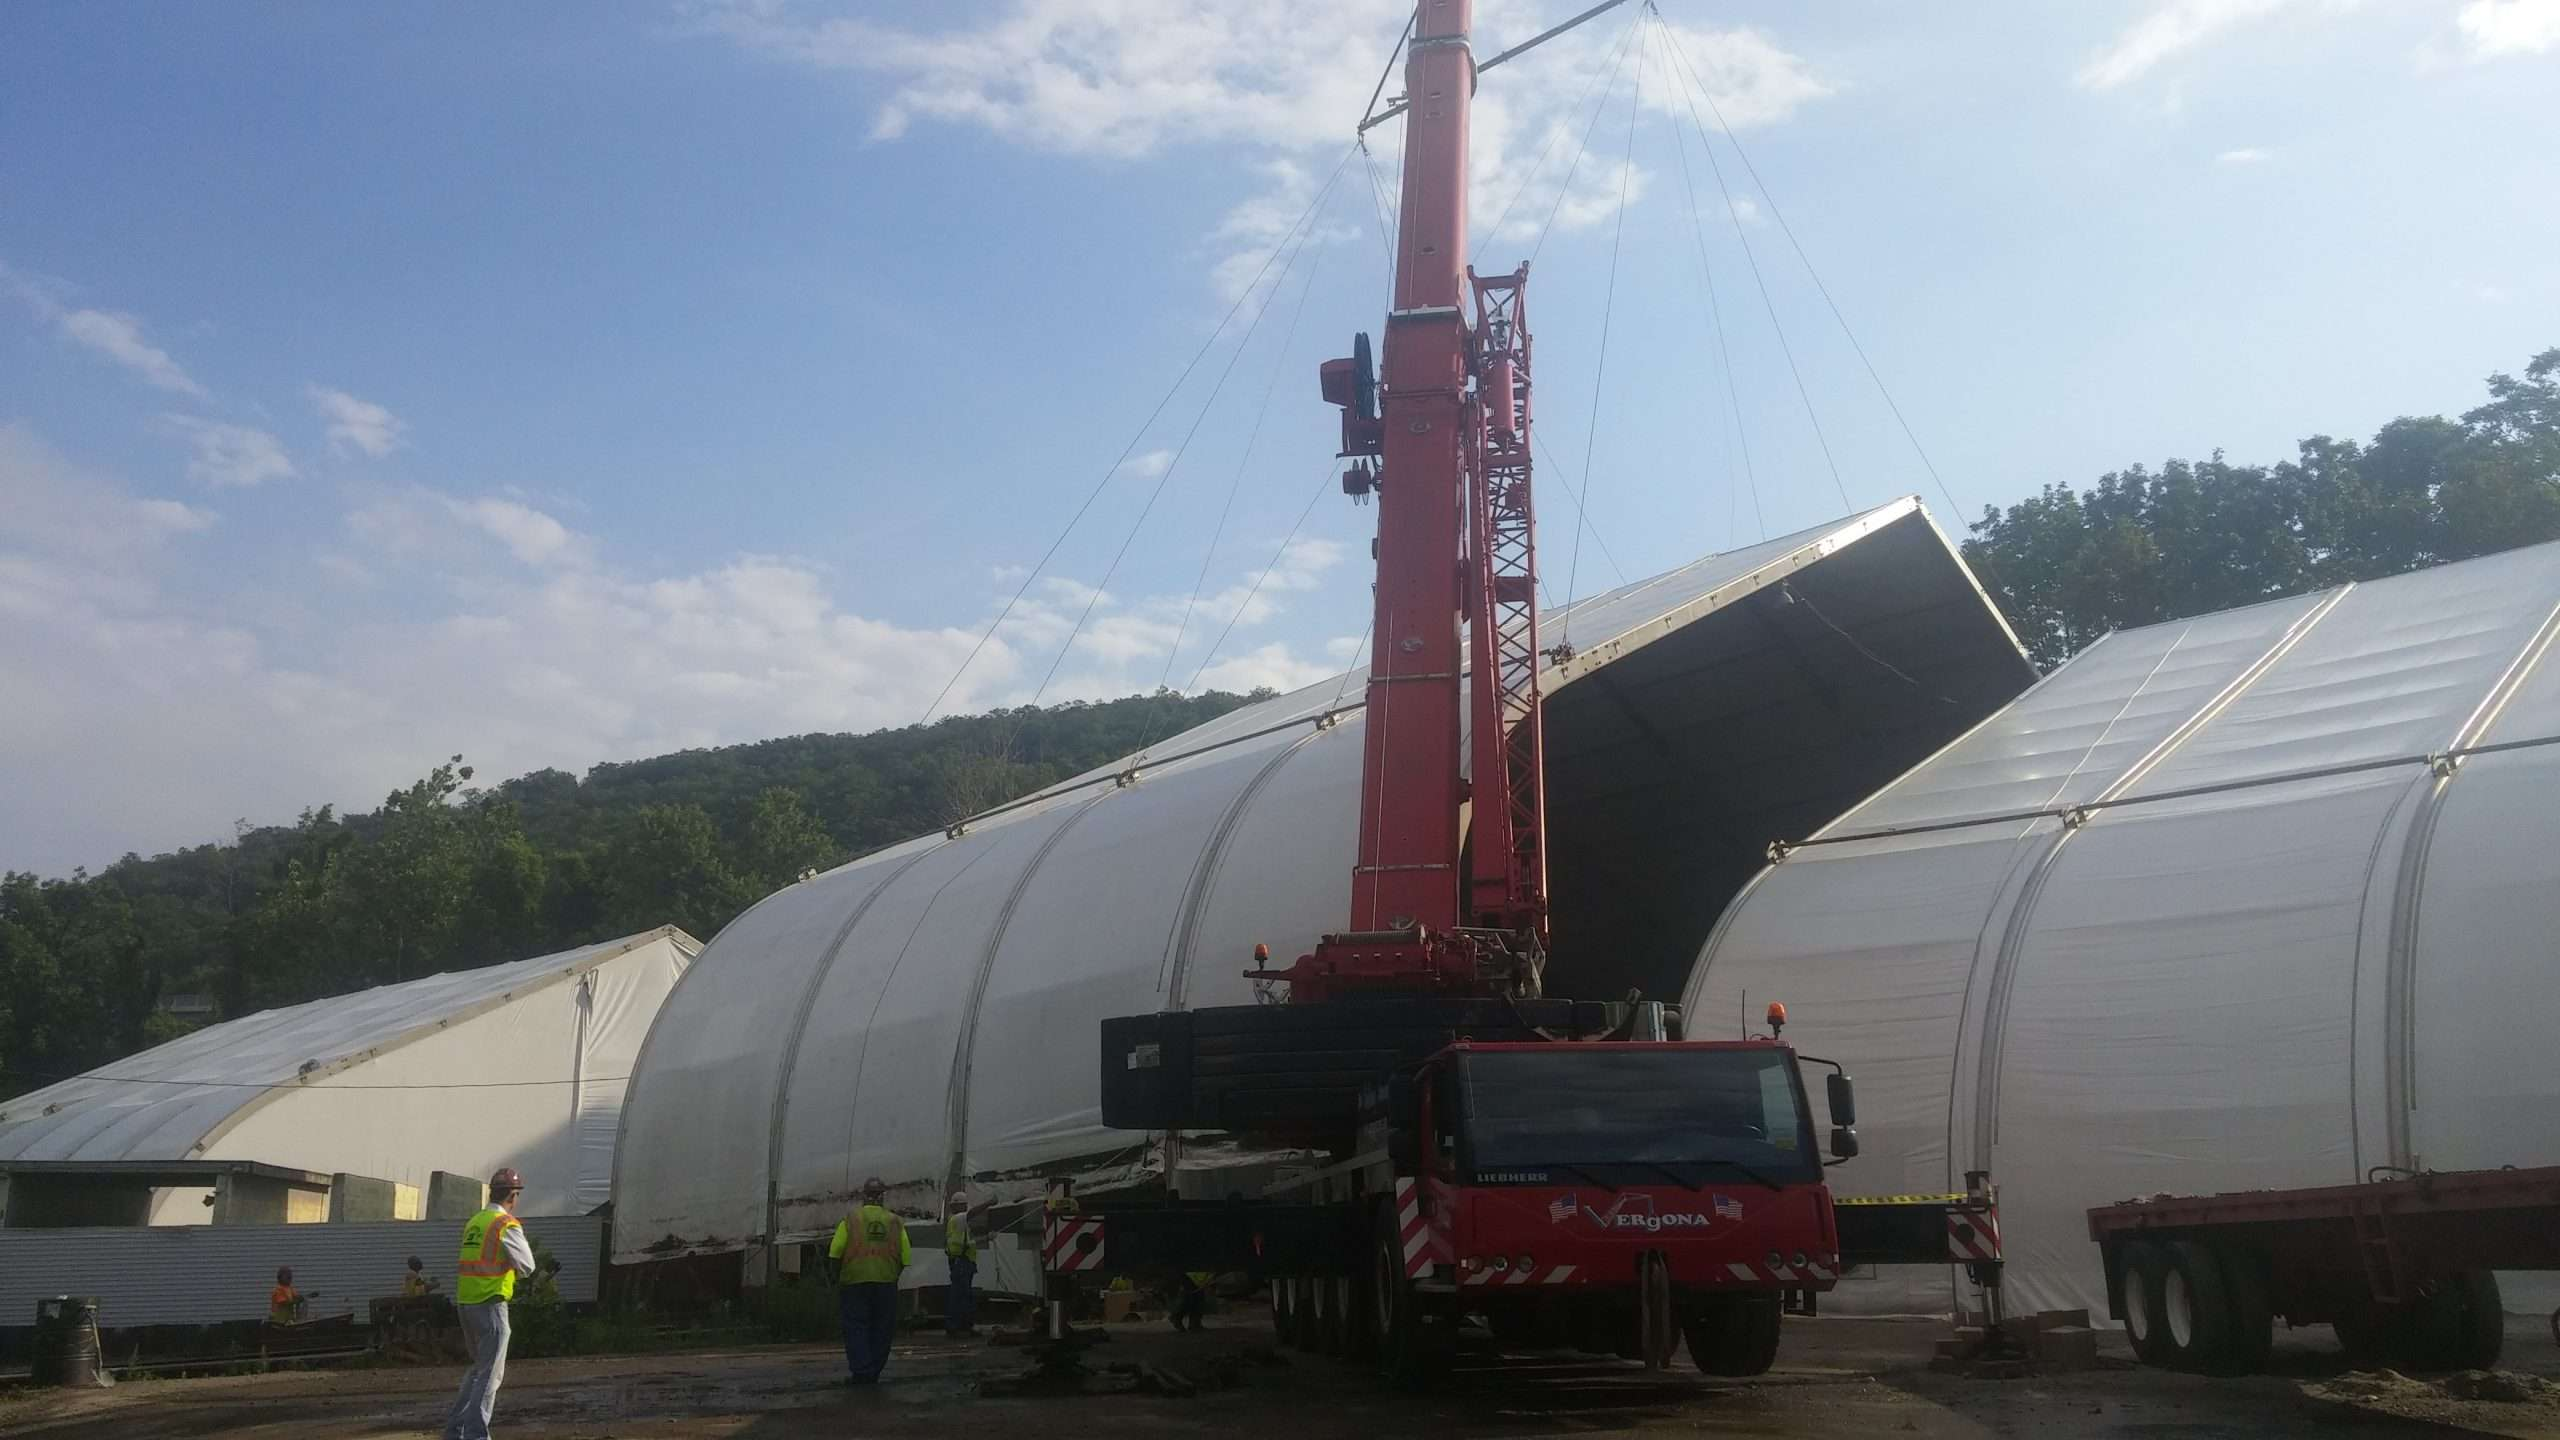 engineered fabric structure segment being moved with a crane as engineers watch the building being reconfigured